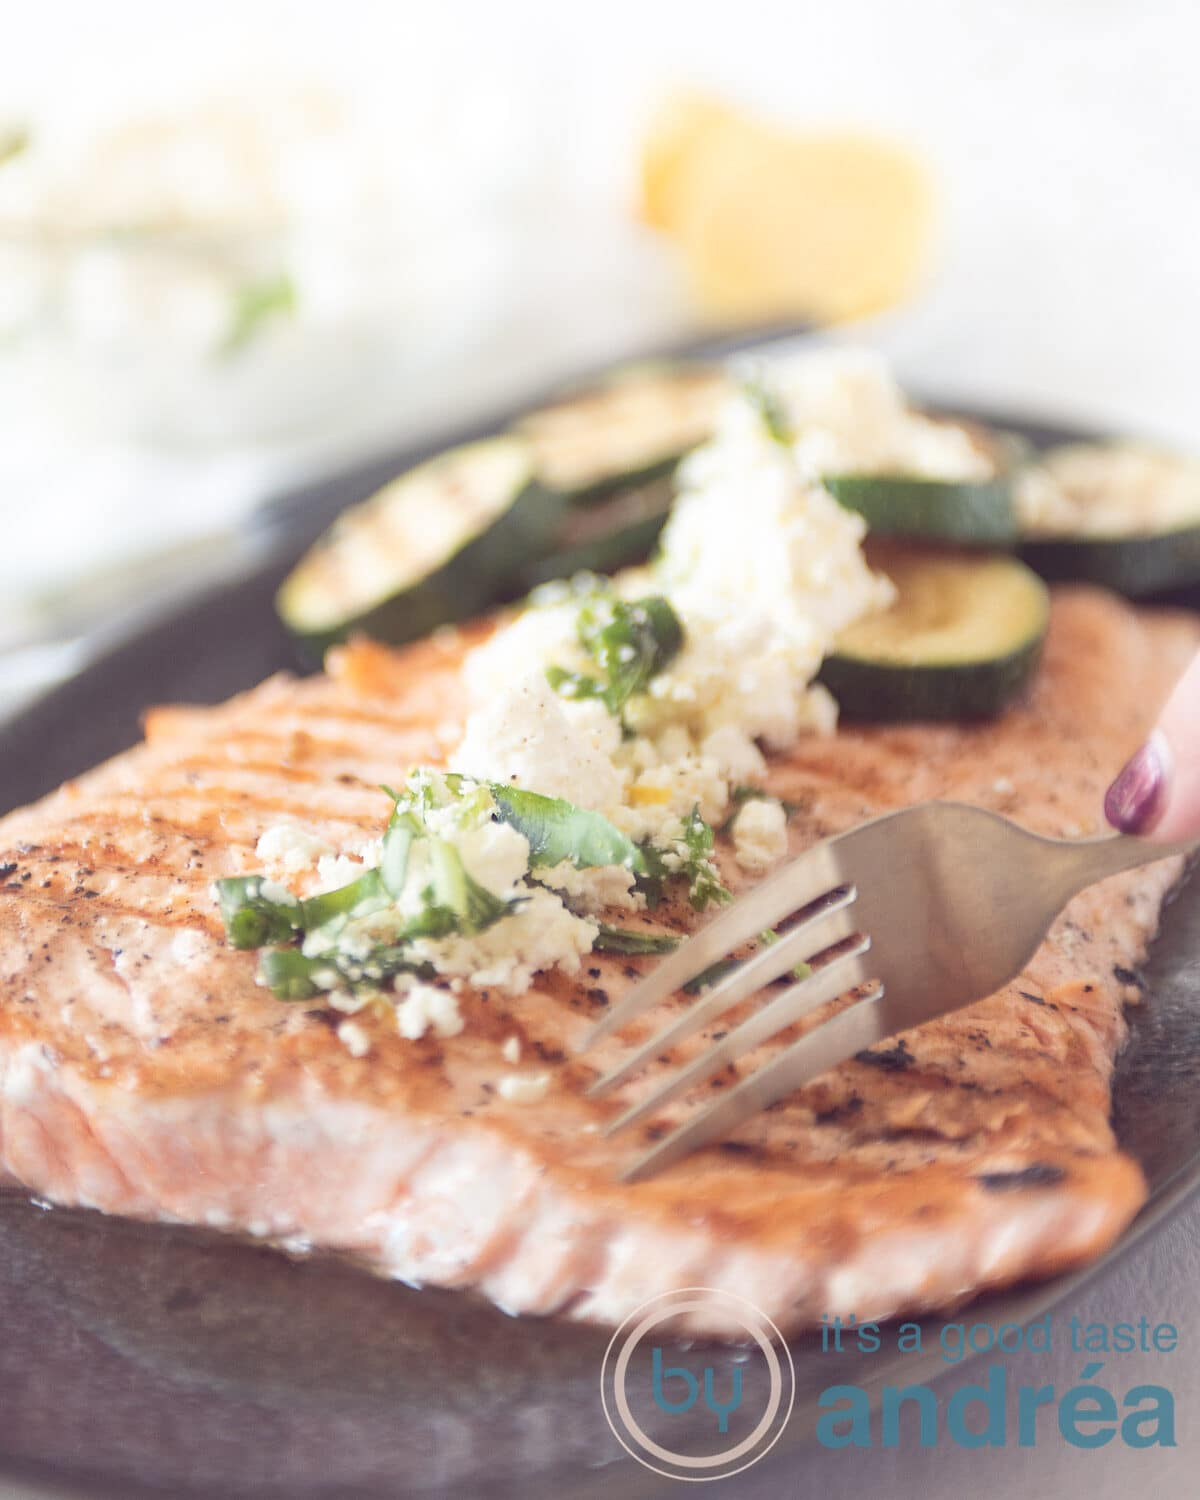 Grilled salmon and zucchini with a feta dressing